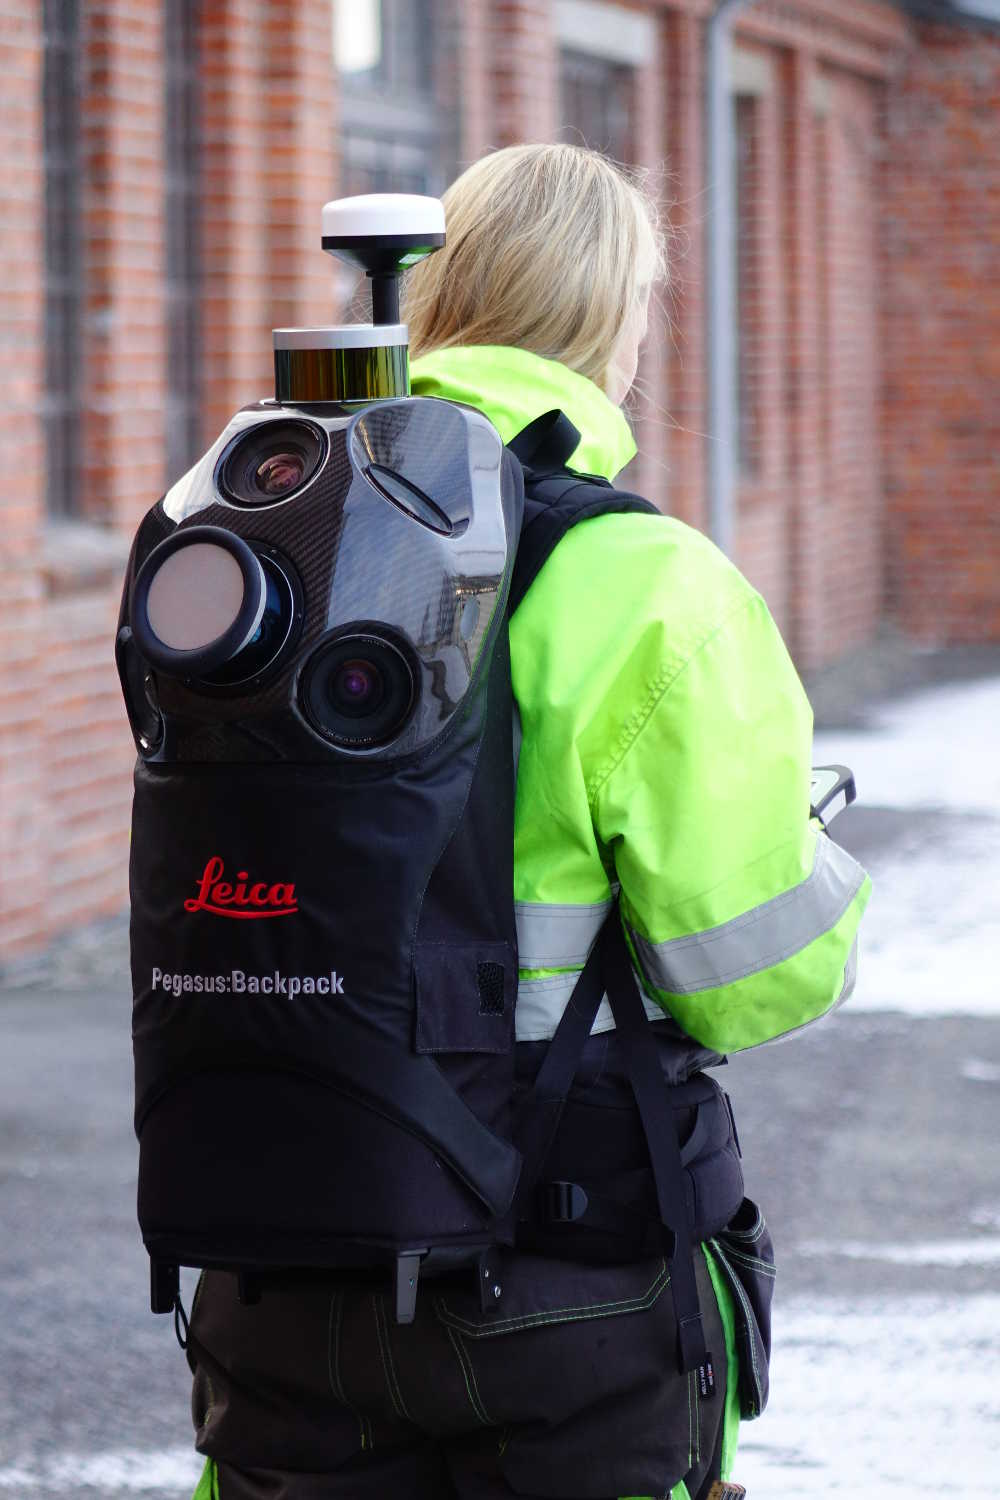 scan survey staff member using the Leica pegasus for mobile mapping